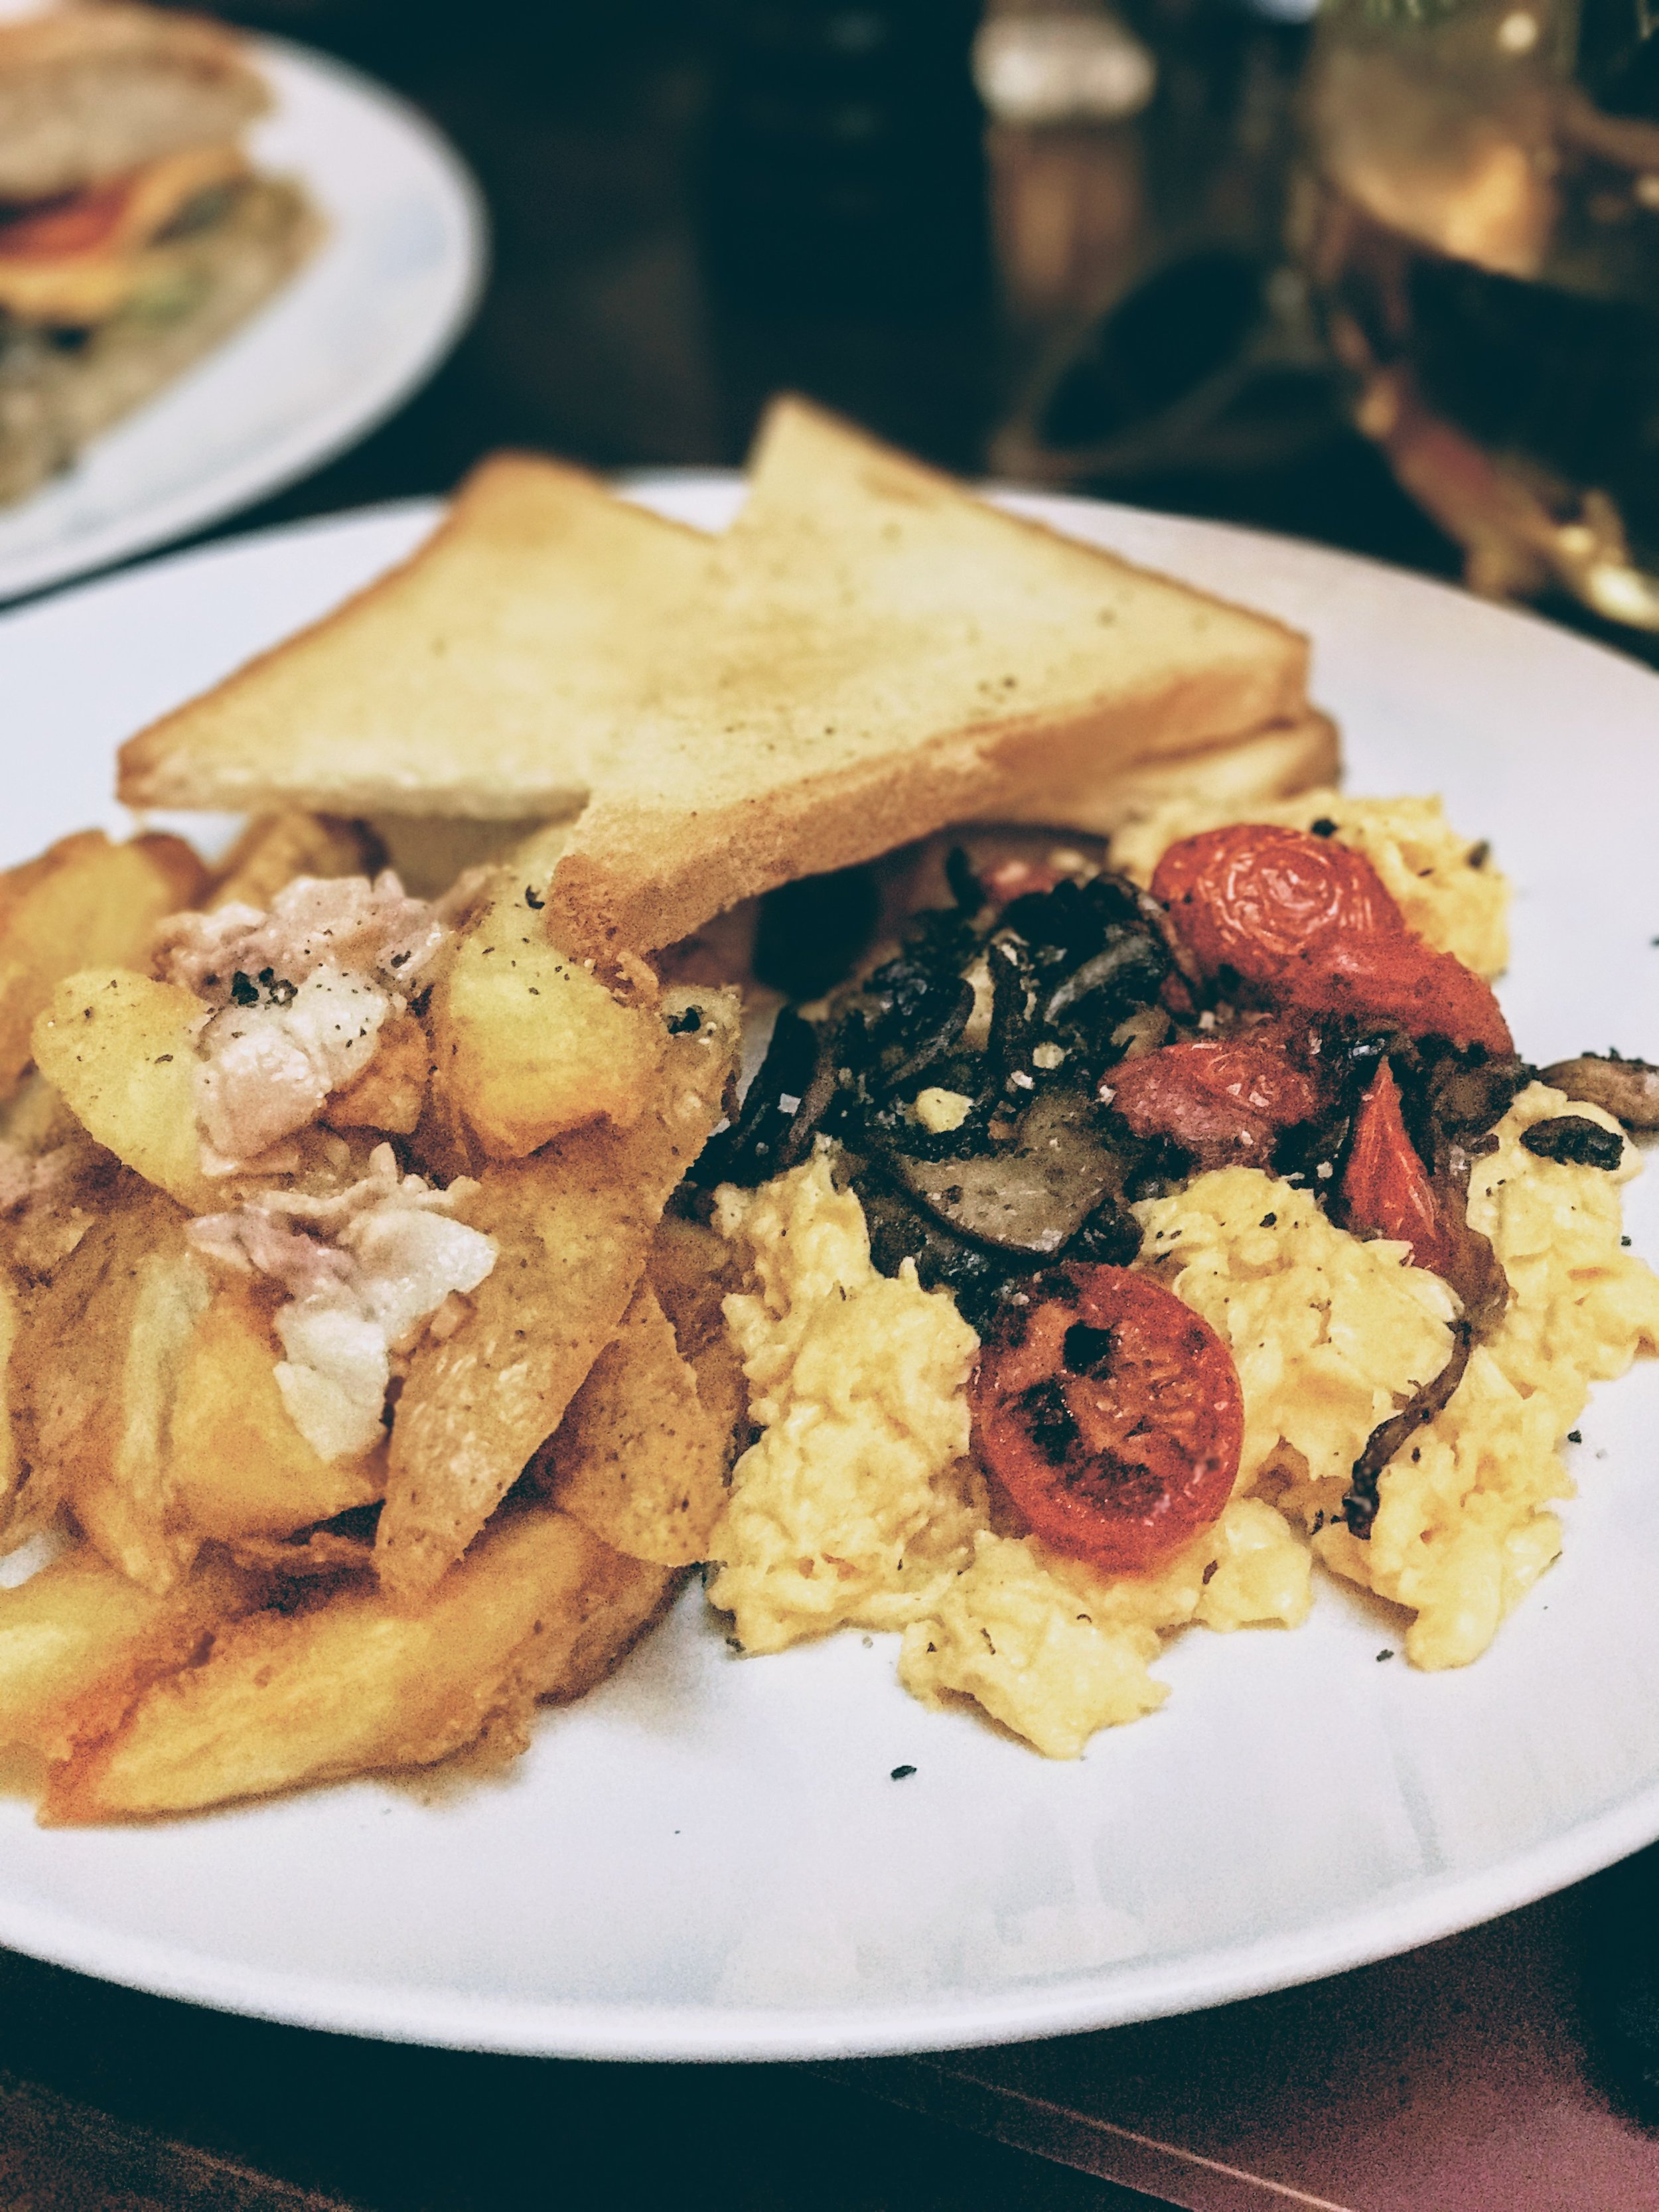 Scrambled eggs with cherry tomatoes and mushrooms - served with crunch country-style potatoes